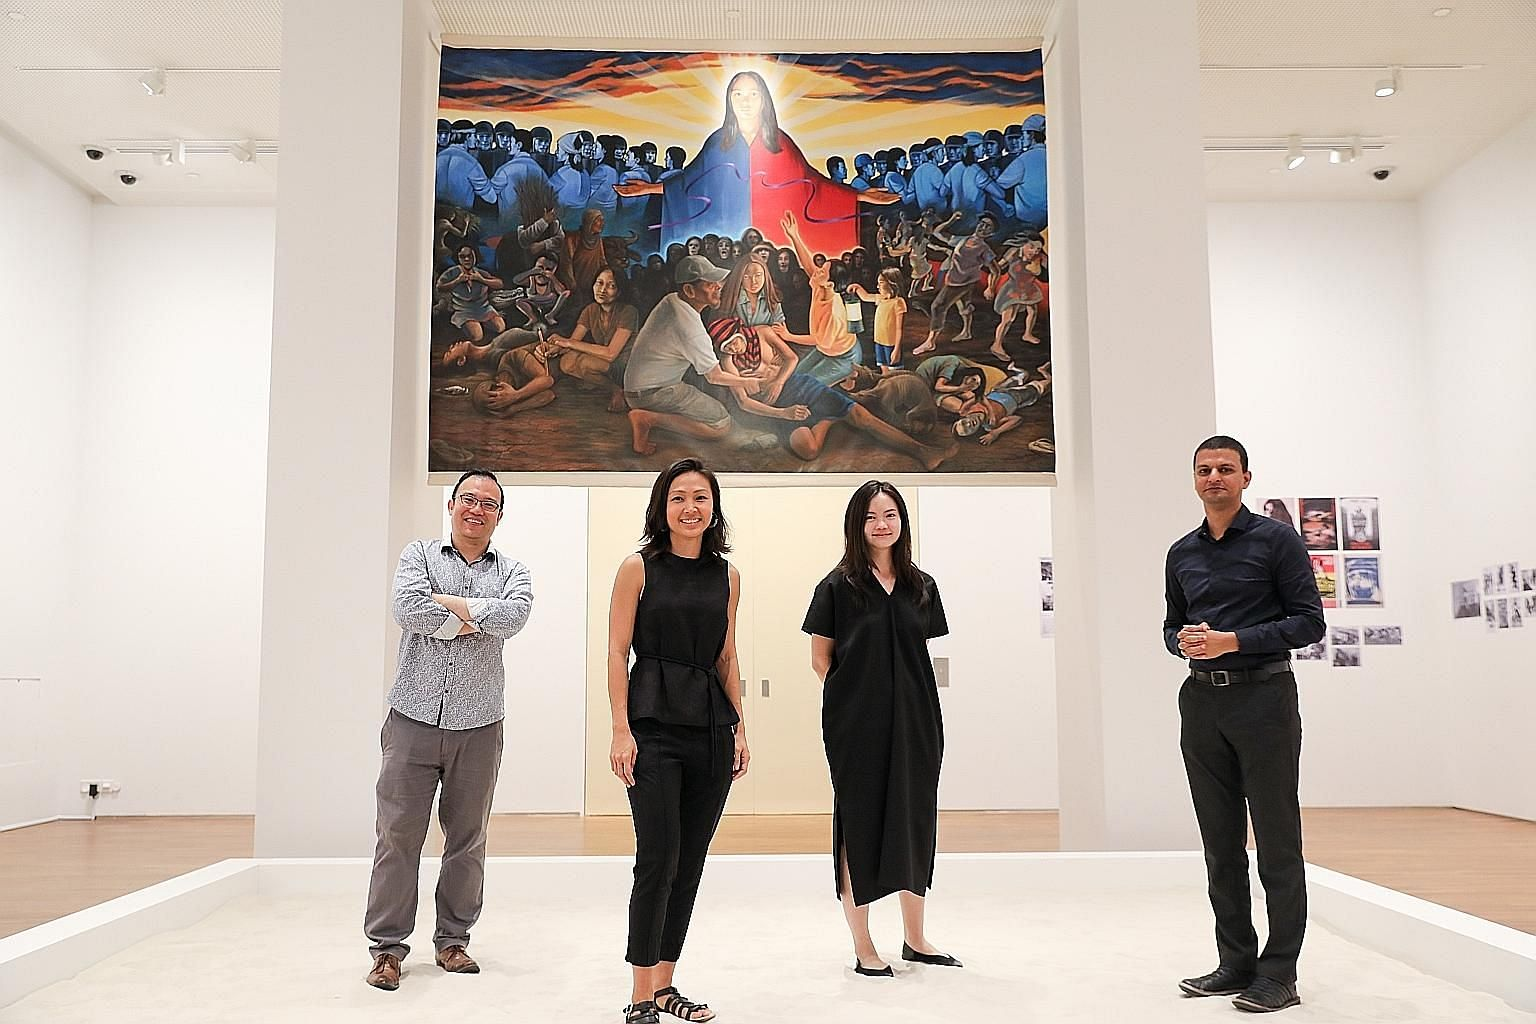 National Gallery Singapore curators (from far left) Seng Yu Jin, Joleen Loh, Cheng Jia Yun and Shabbir Hussain Mustafa standing in Step On The Sand And Make Footprints, a work by Filipino artist Raymundo Albano, which requires visitors to leave their